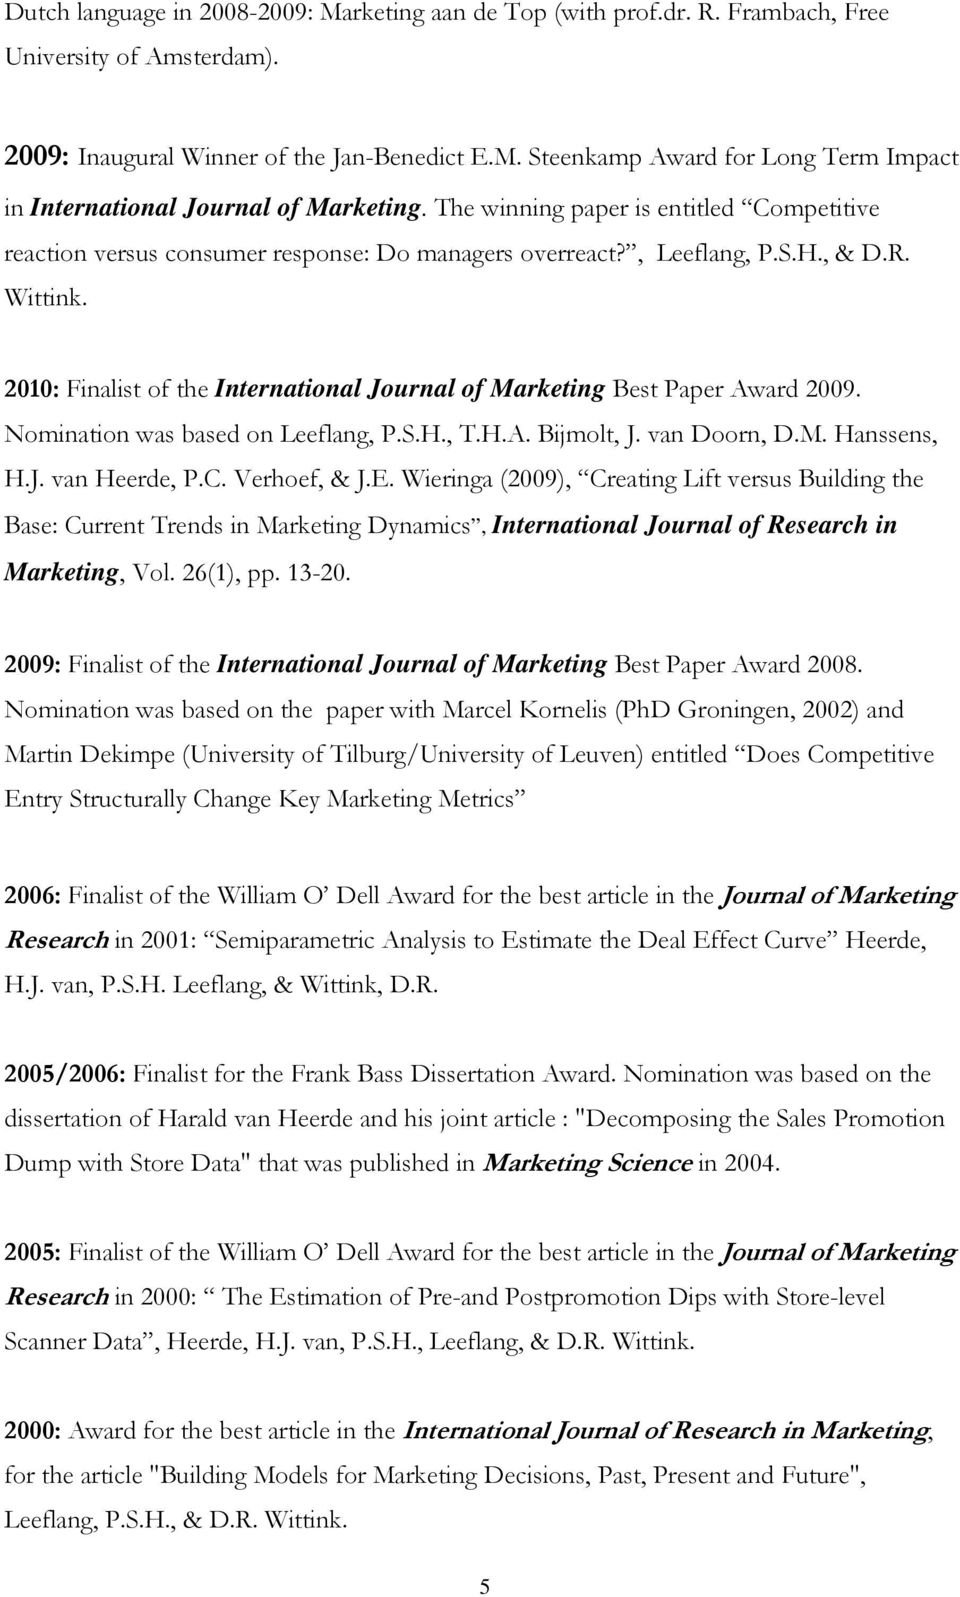 2010: Finalist of the International Journal of Marketing Best Paper Award 2009. Nomination was based on Leeflang, P.S.H., T.H.A. Bijmolt, J. van Doorn, D.M. Hanssens, H.J. van Heerde, P.C.